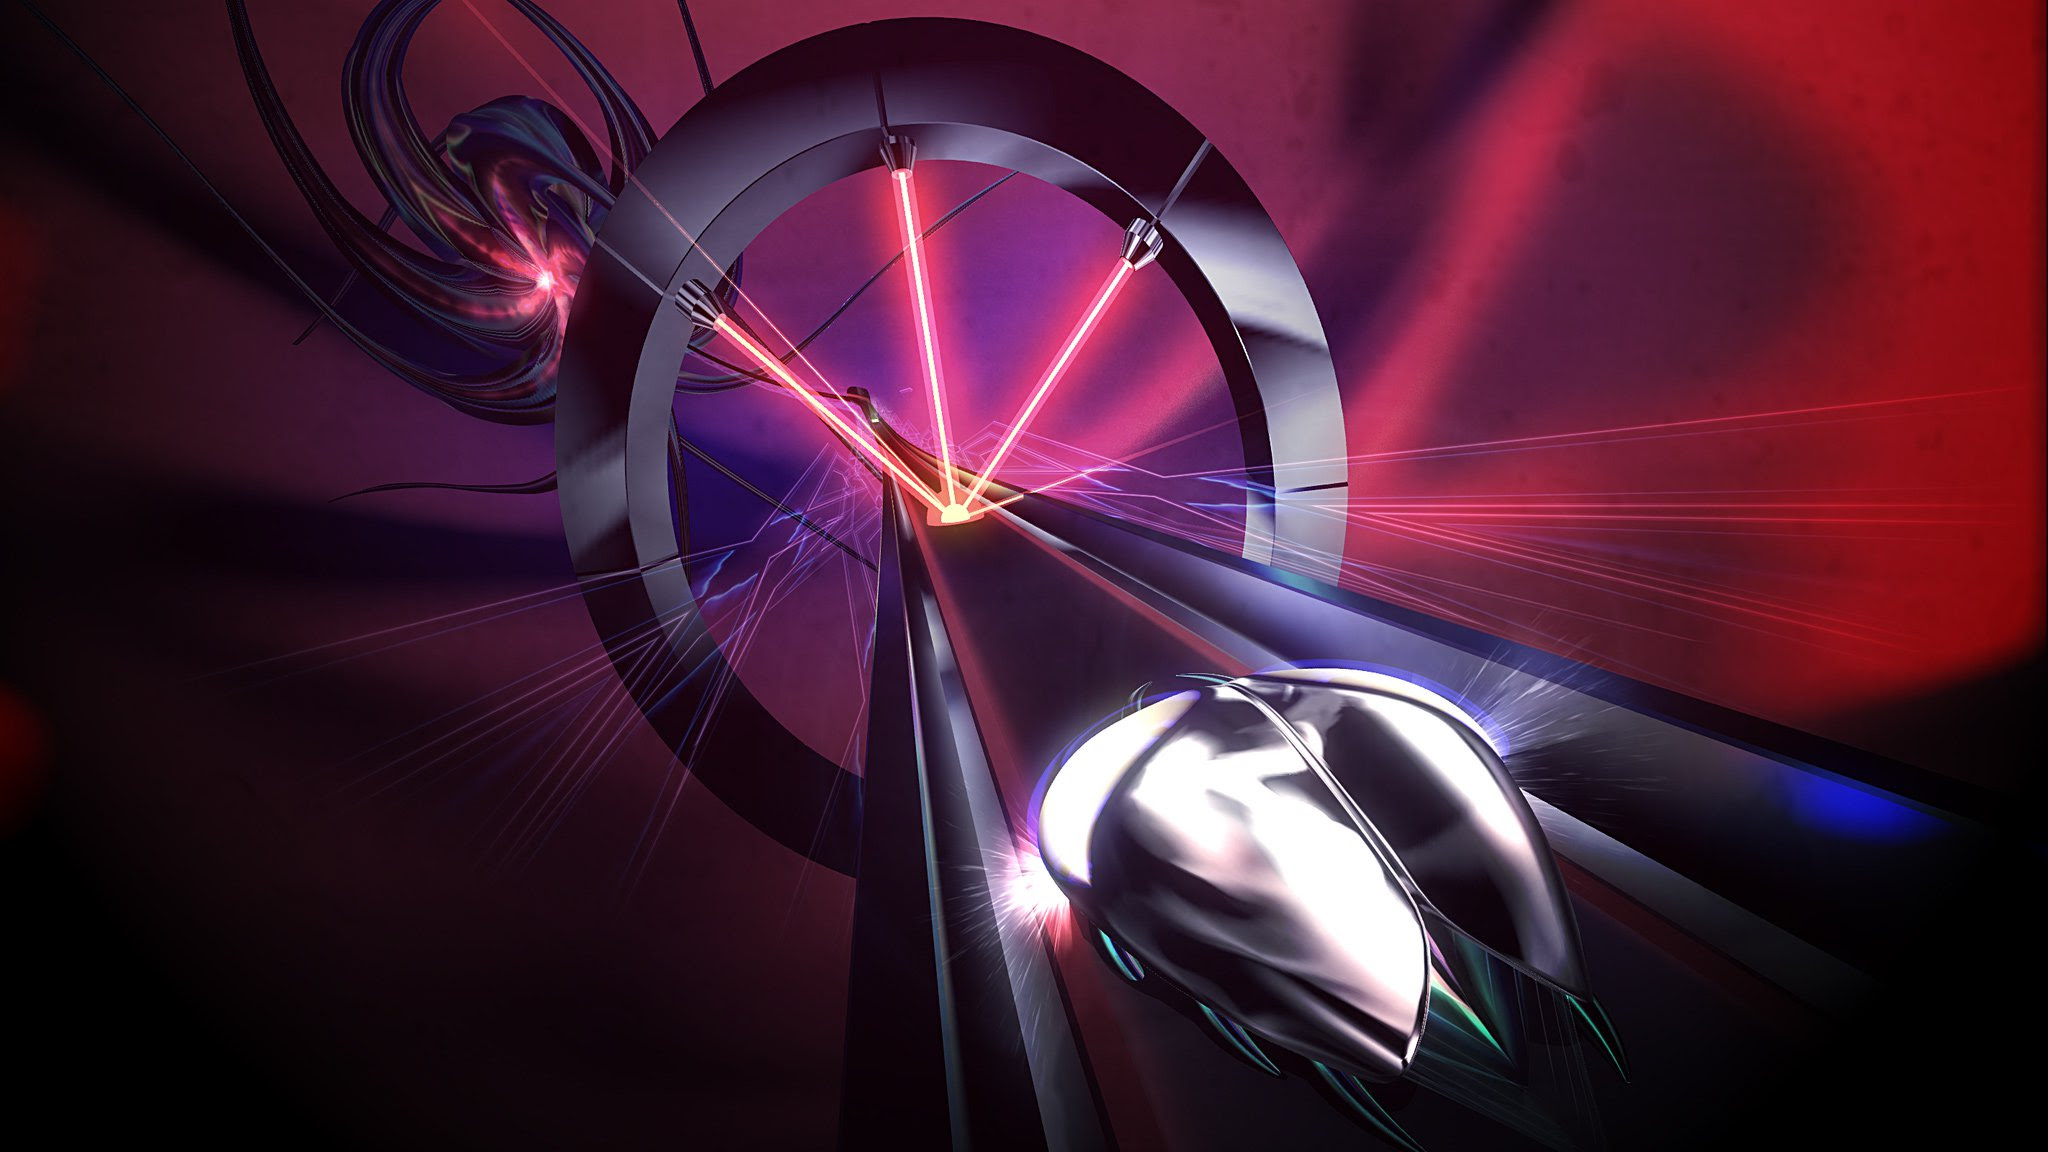 Thumper will hit Xbox One this month screenshot